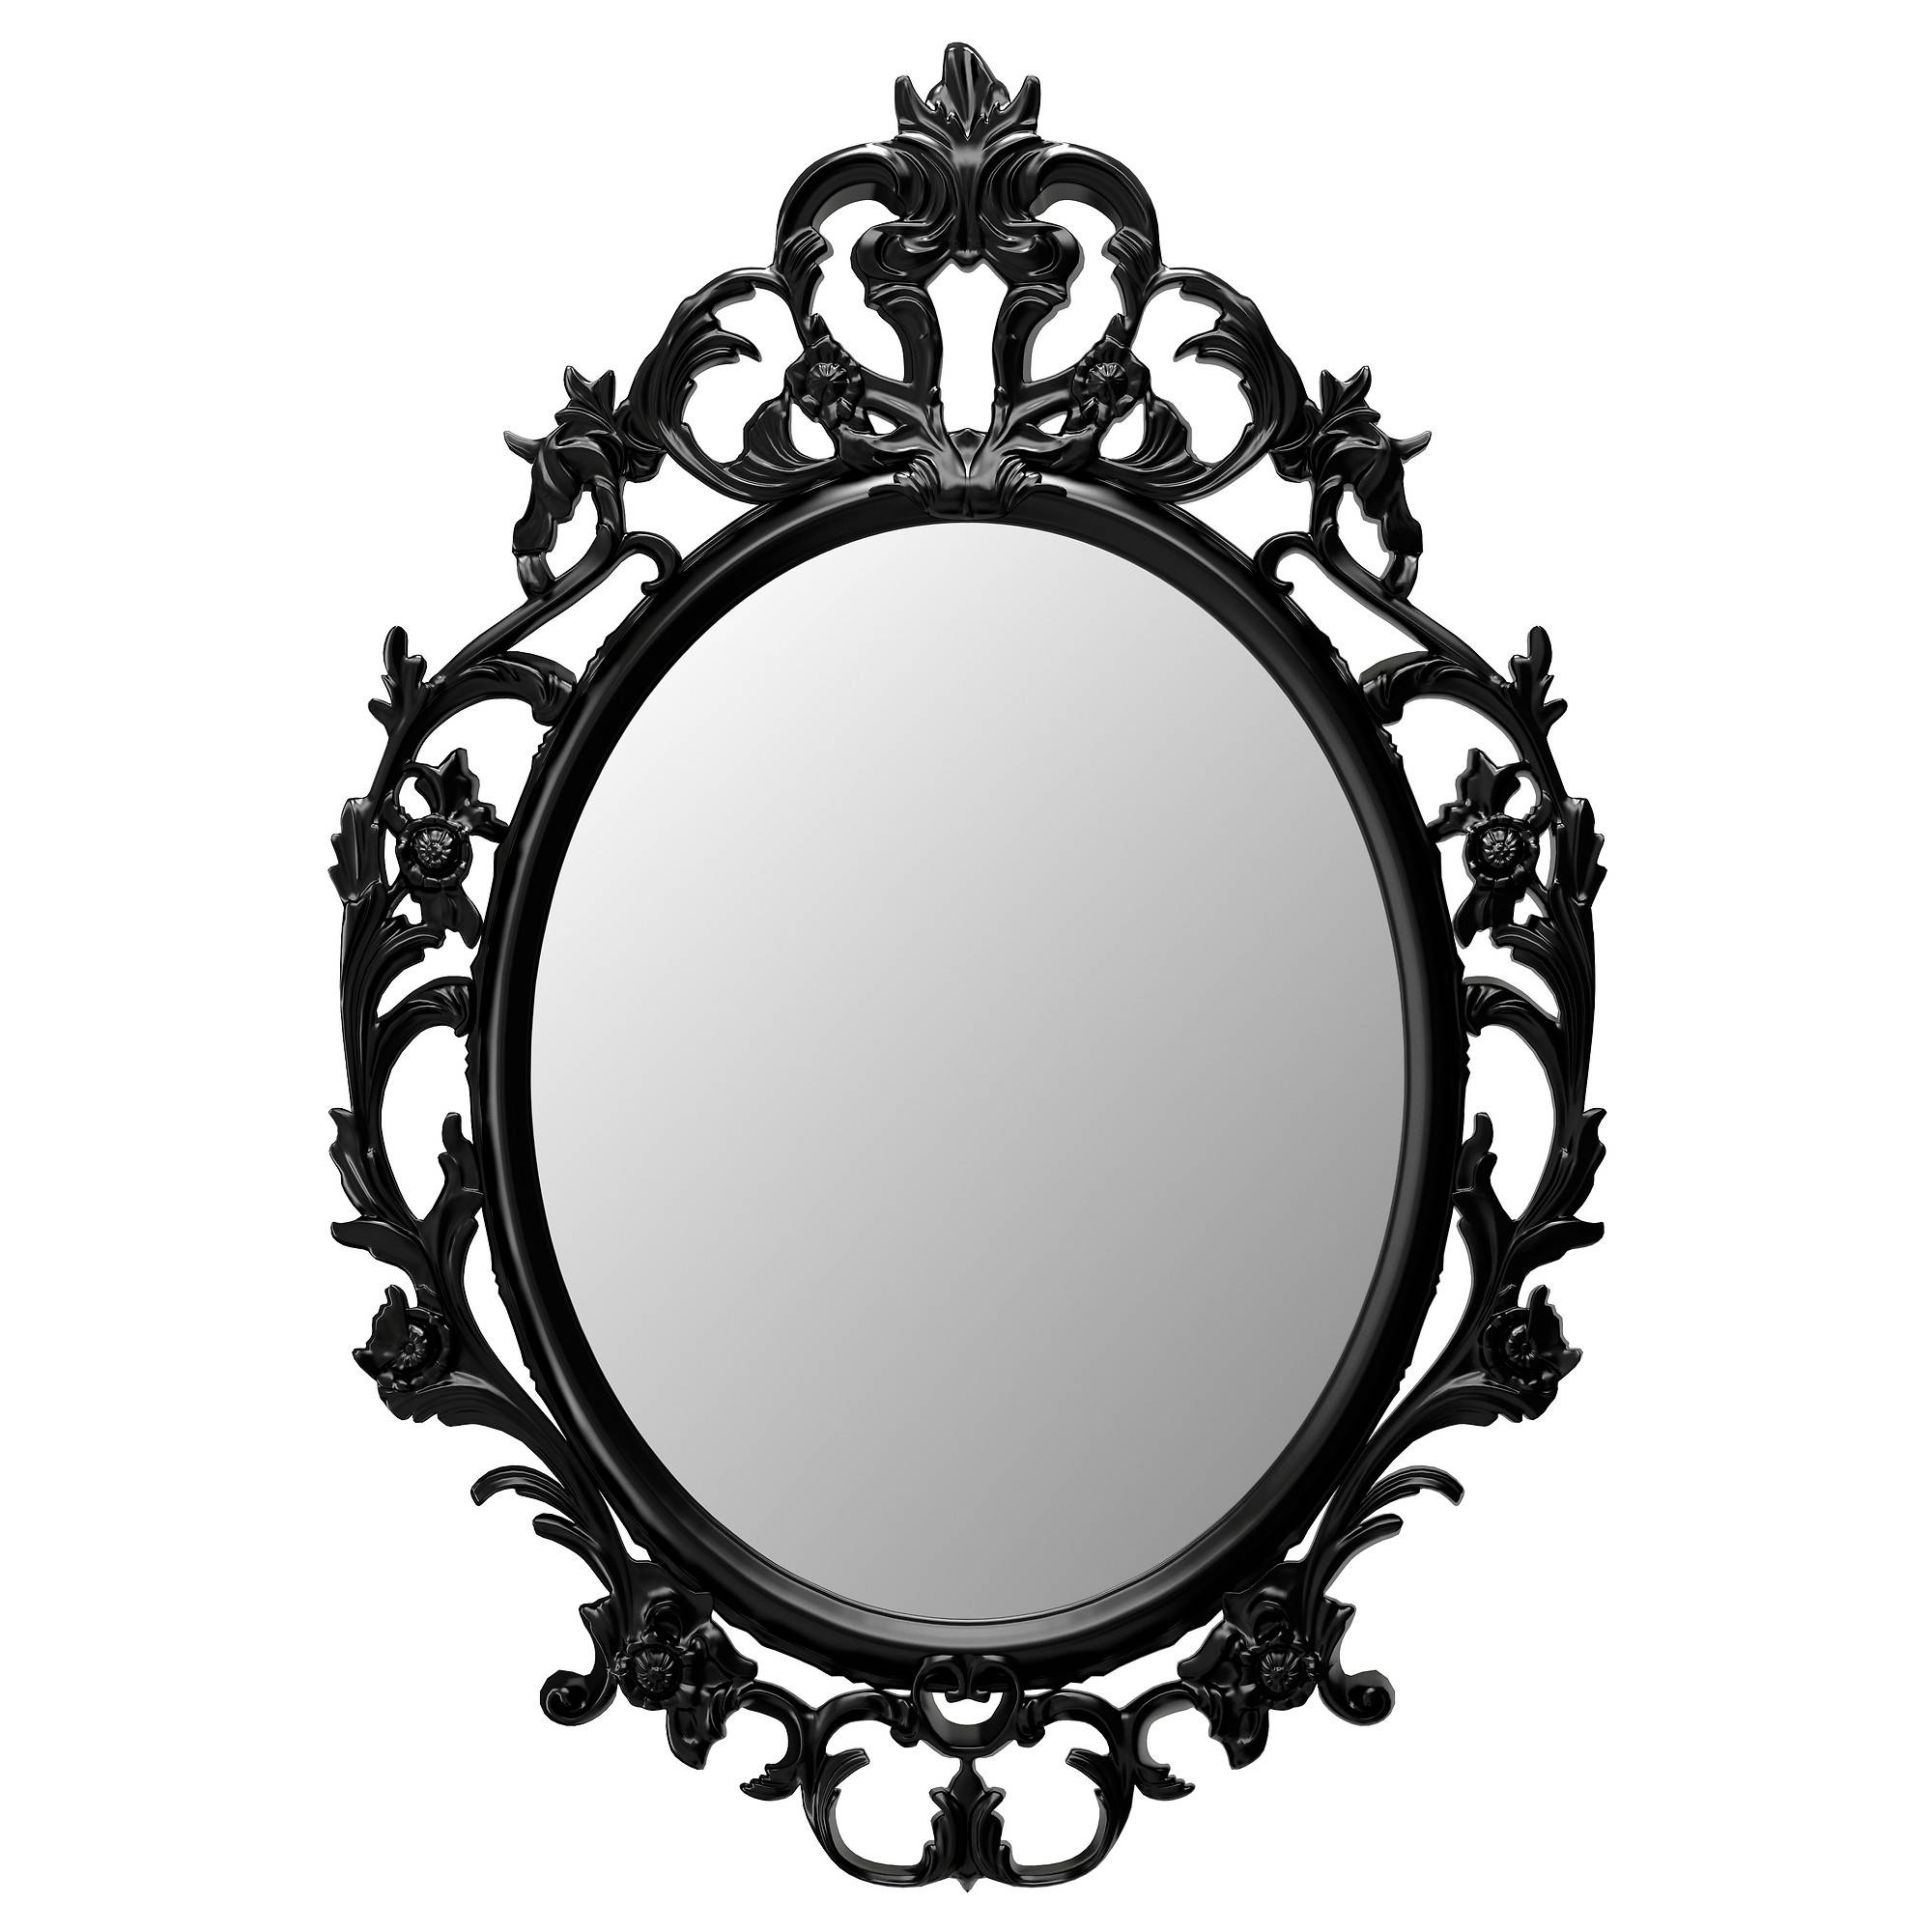 Ung Drill Mirror - Ikea within Black Vintage Mirrors (Image 13 of 15)